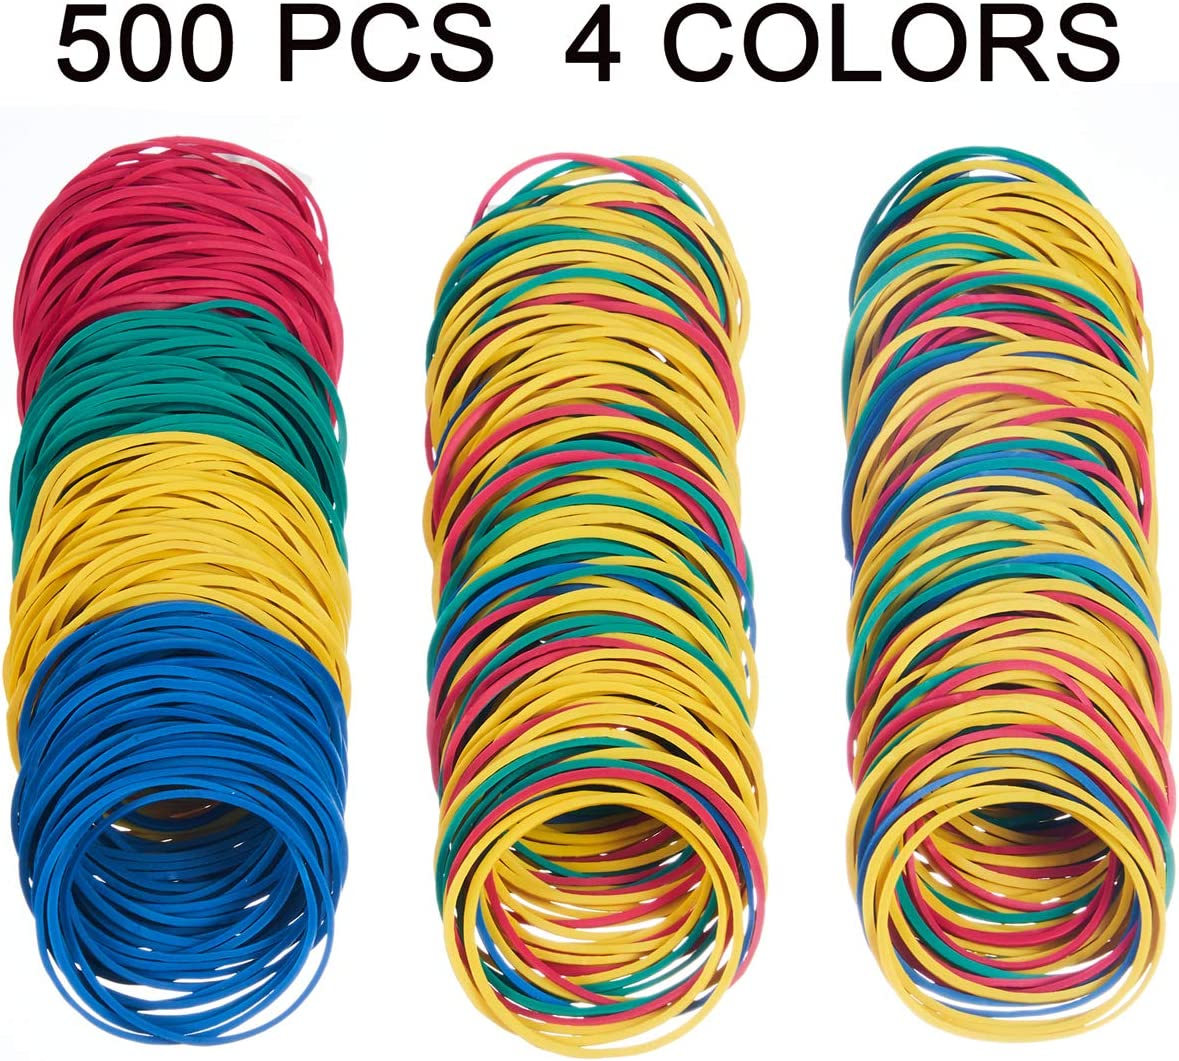 YOUOWO Rubber Bands Colors 500 Pcs 38mm #16 Small Elastic Band Loop Rubber Bands for Office Supply Bank Paper Bills Money Dollars Elastic Stretchable Bands Sturdy General Purpose Rubber Band